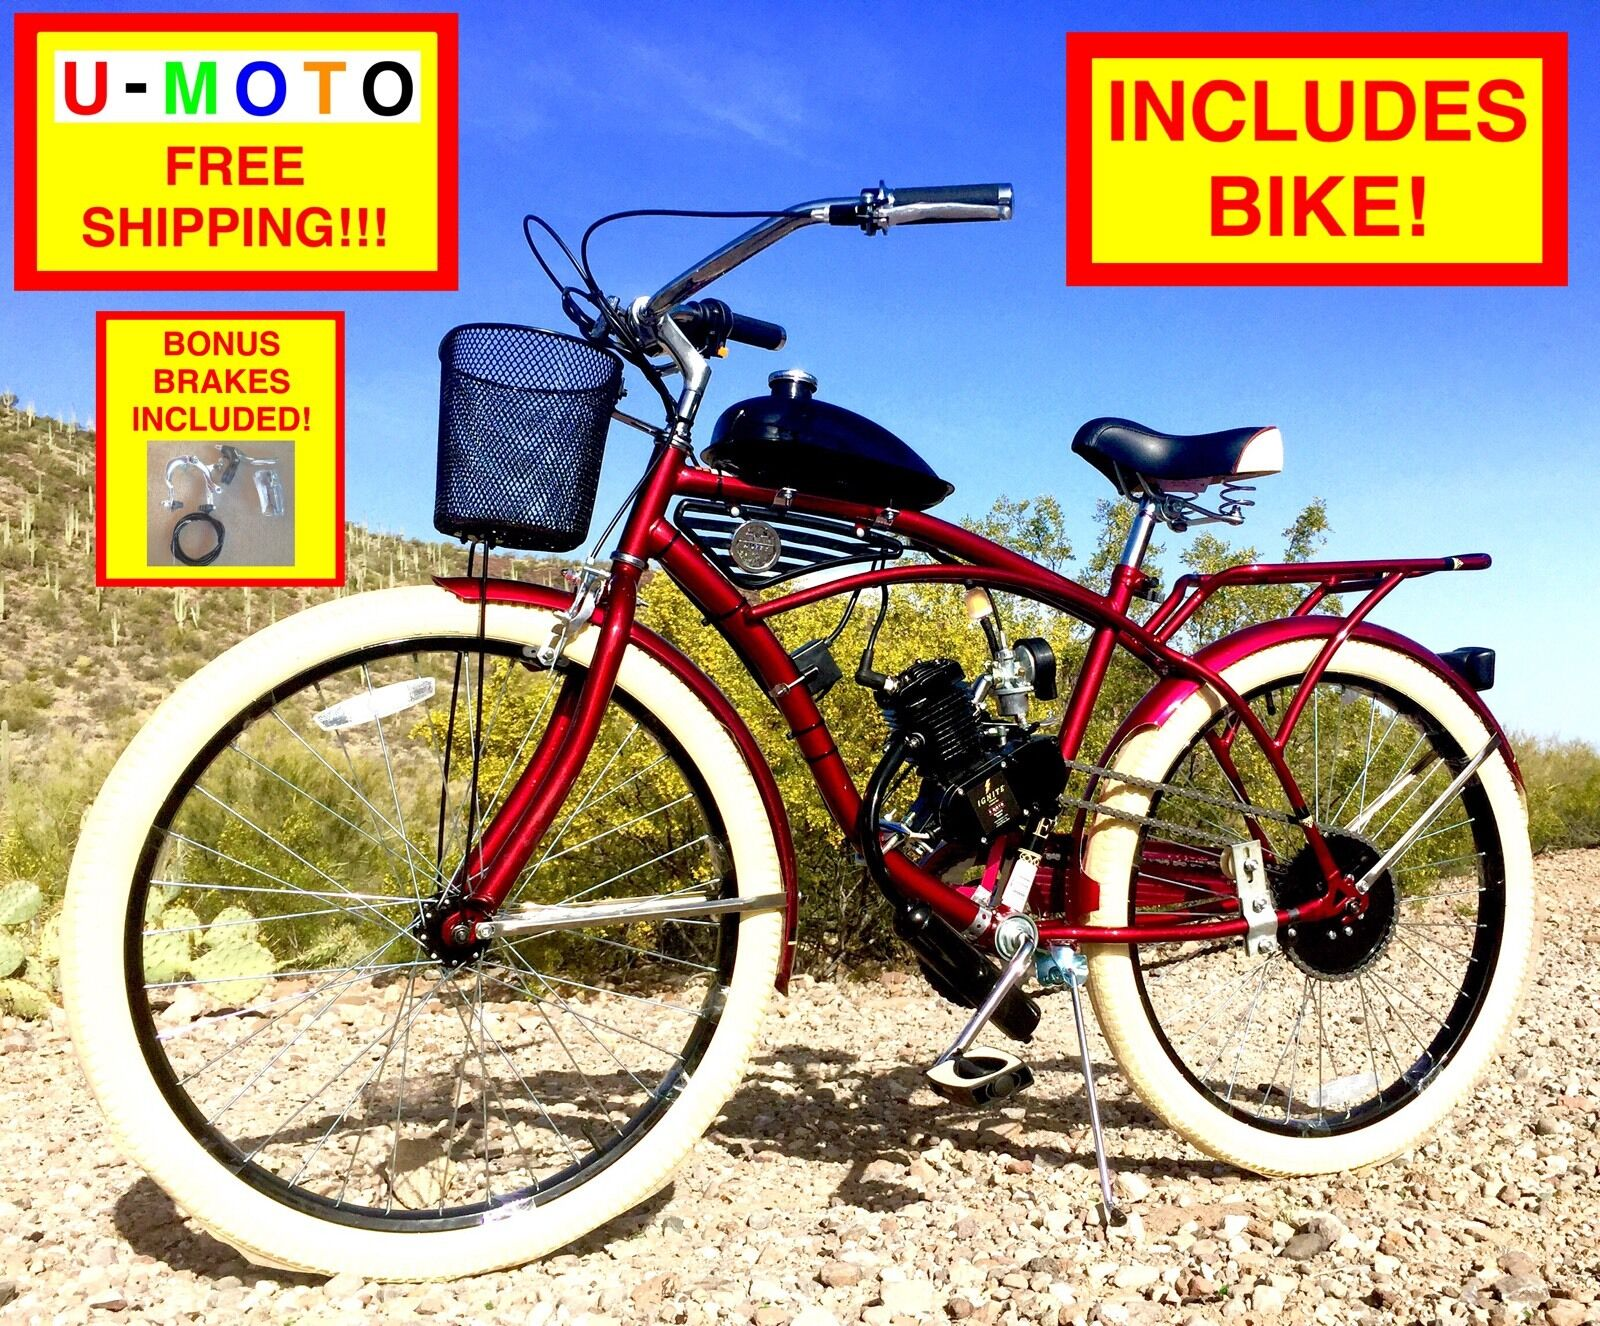 80CC 2-STROKE BICYCLE MOTOR COMPLETE DIY MOTORIZED BICYCLE KIT WITH 26  BIKE